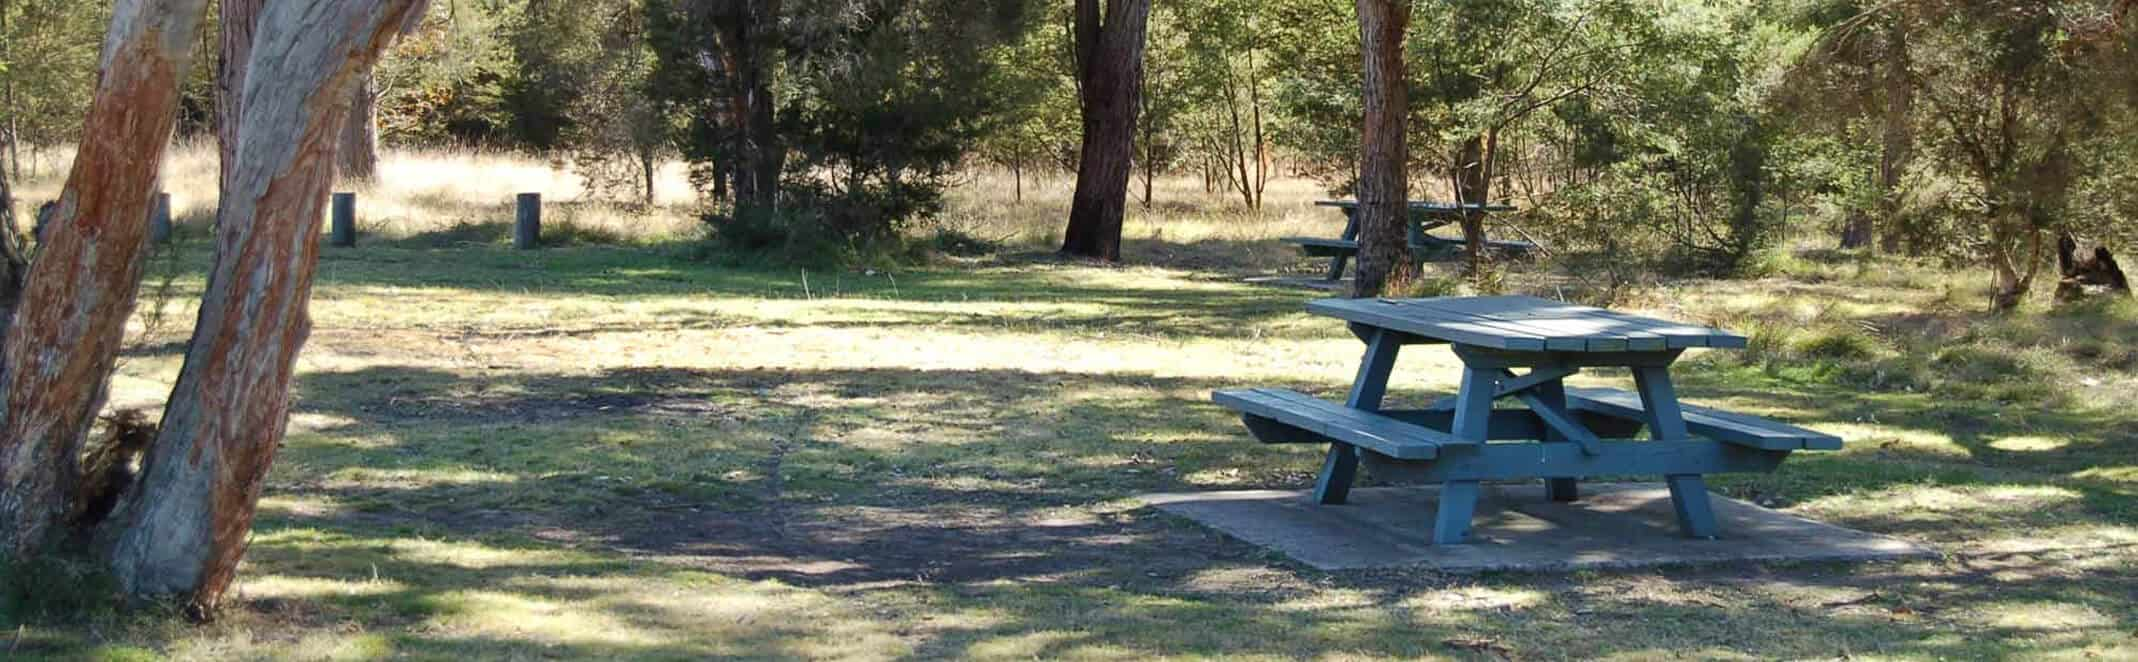 Hunter Valley picnic area